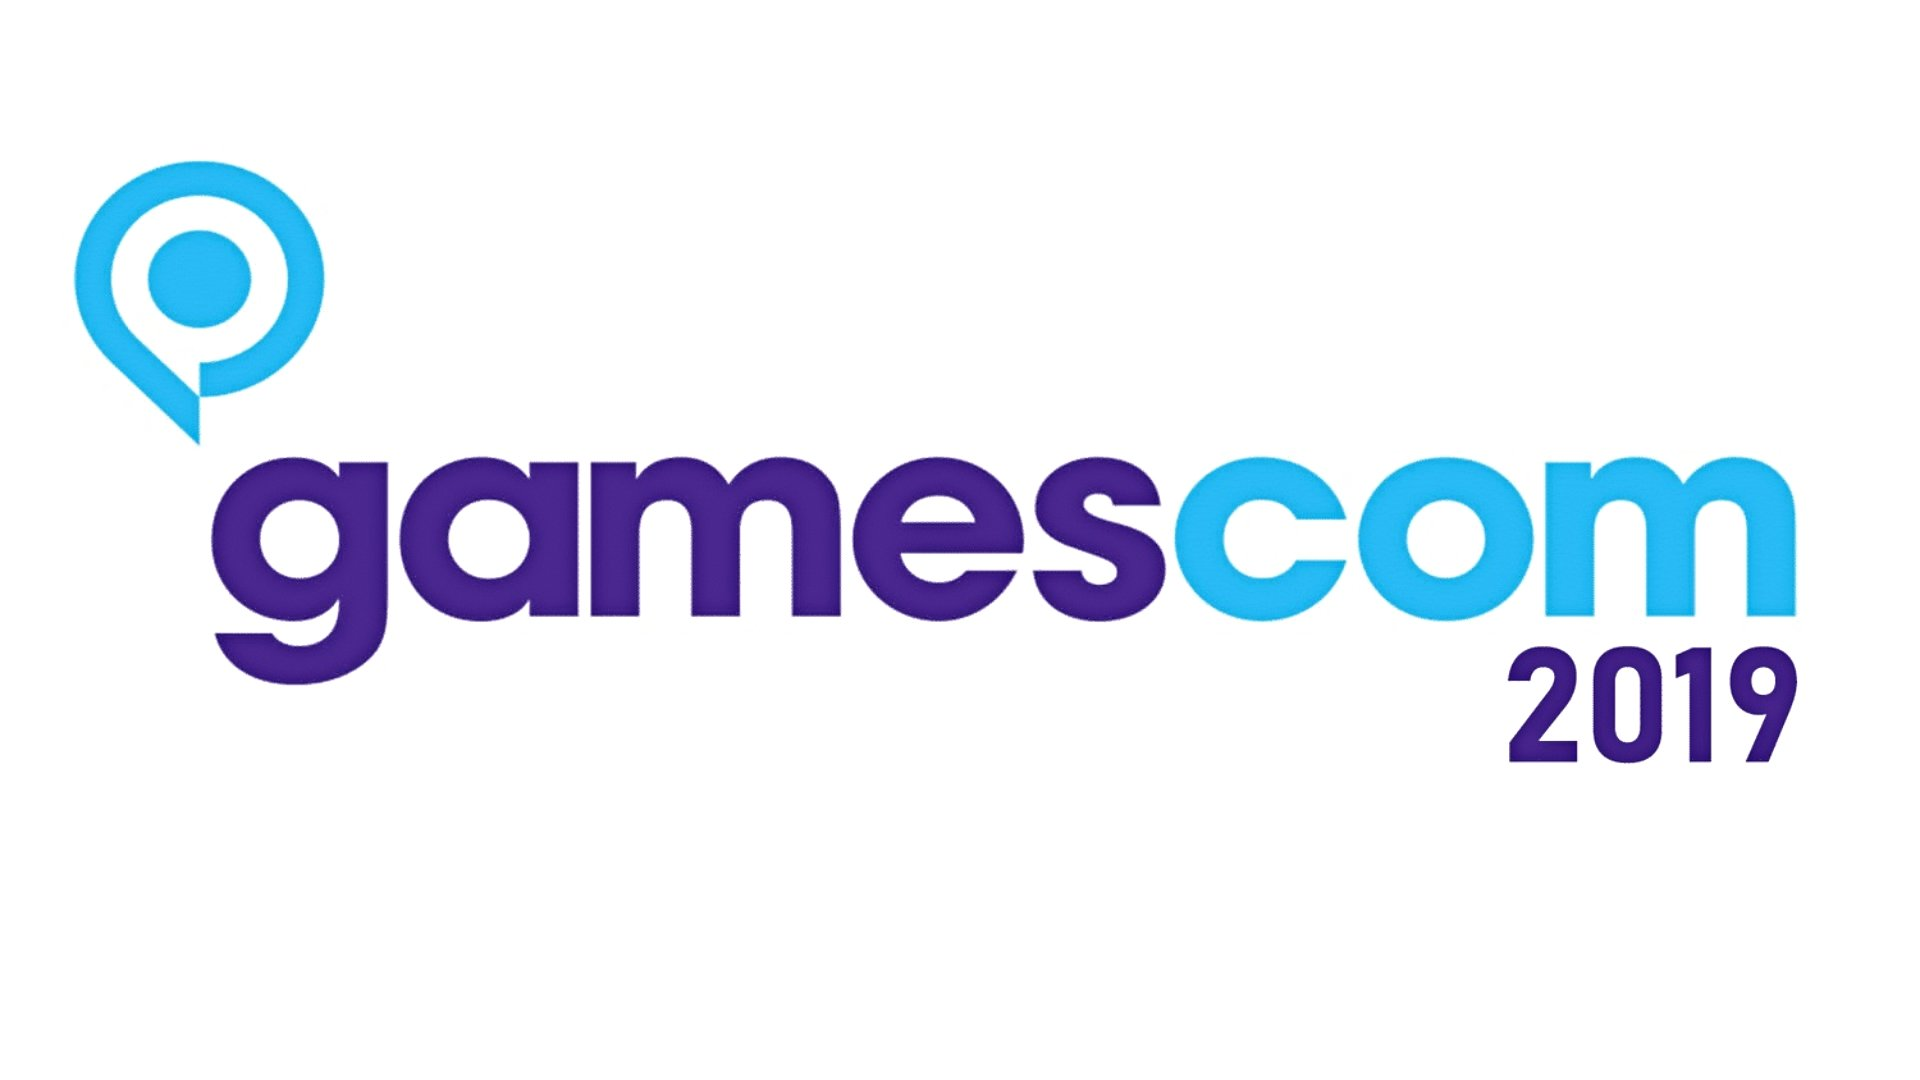 Gamescom 2019: Collect Stream Codes and Get Rewards - Day 1